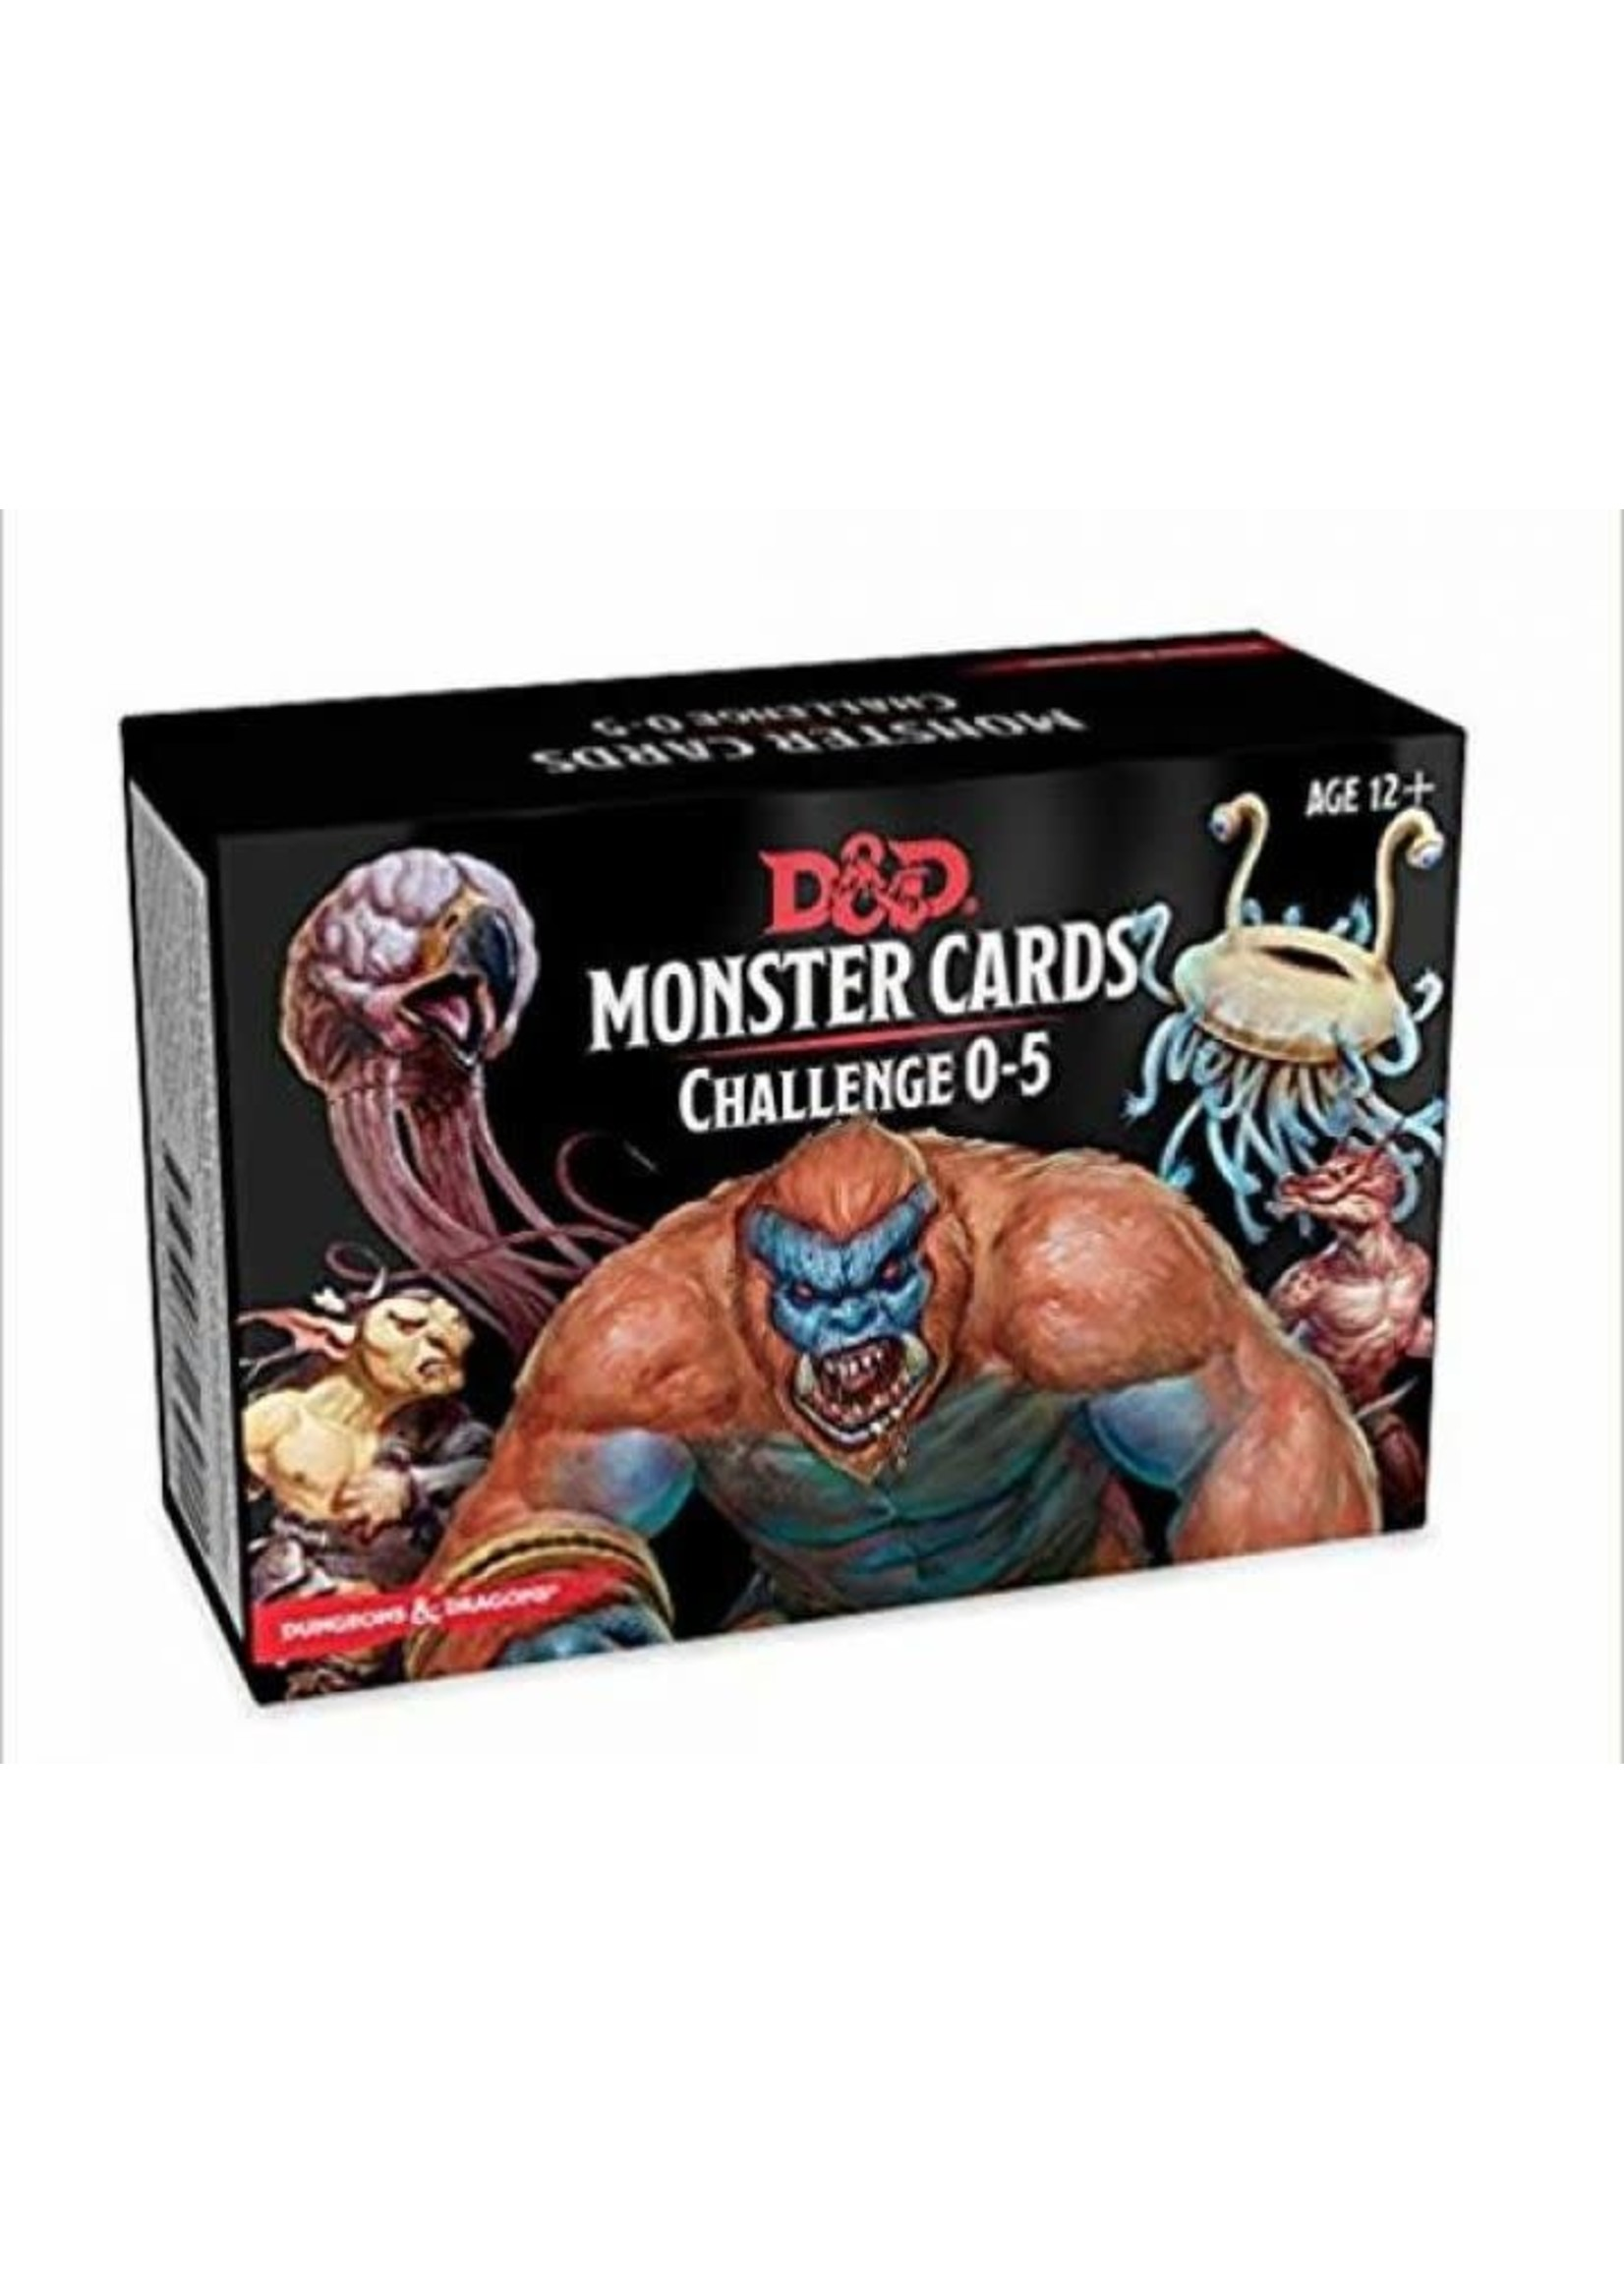 Dungeons & Dragons Monster Card Deck Levels 0-5 (242 Cards)